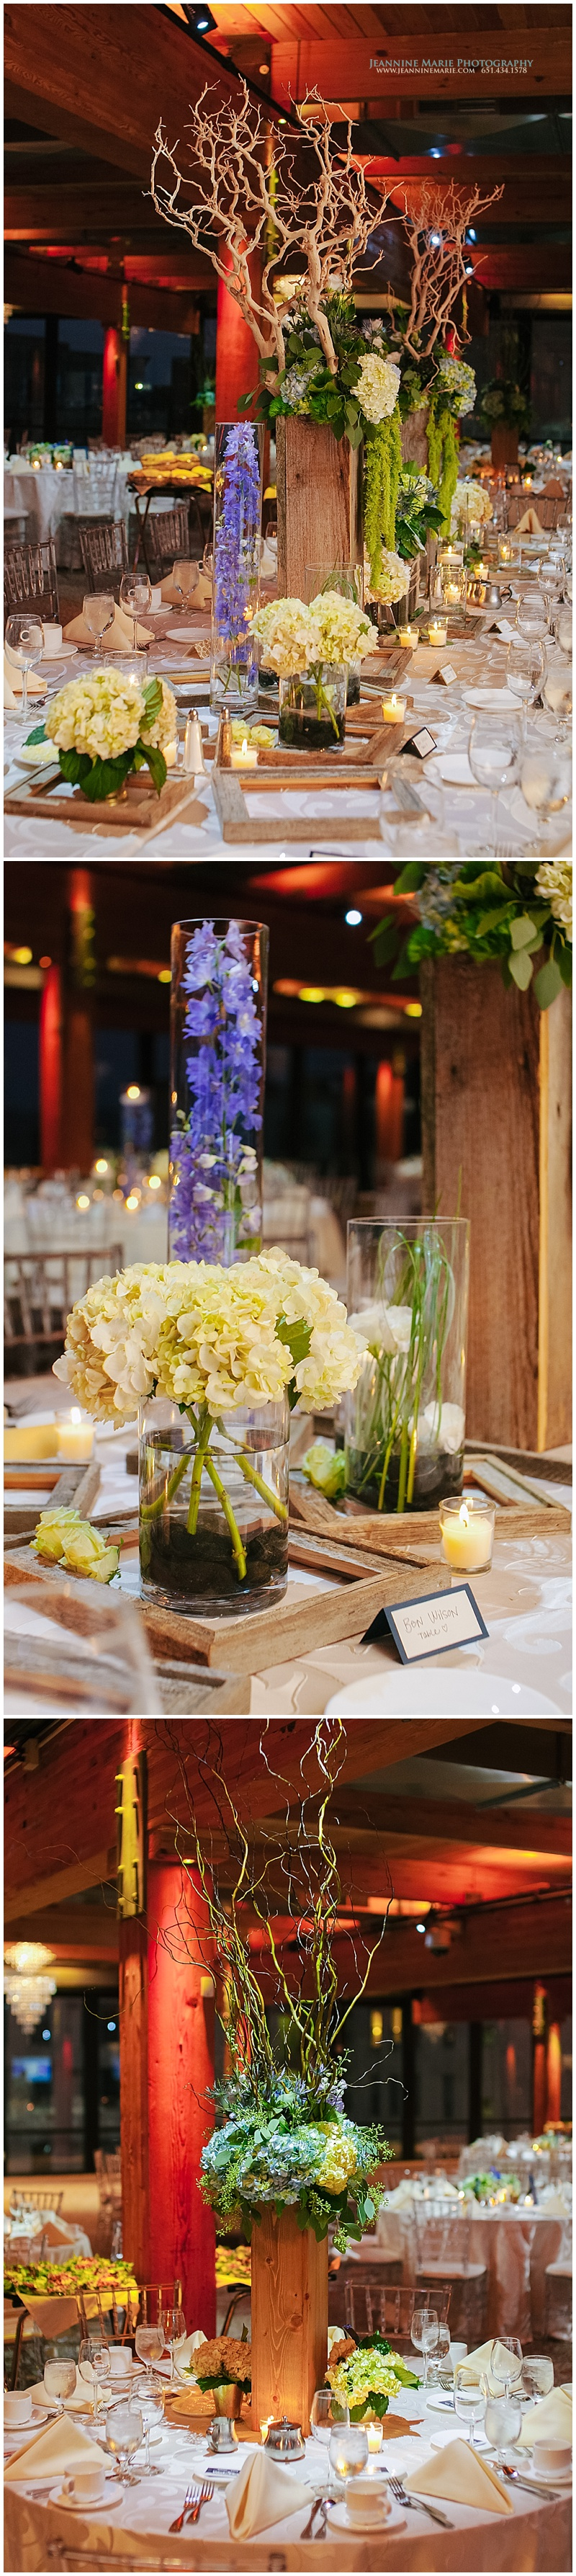 wedding reception minnetonkmn%0A Wedding reception guest table centerpieces at A u    BULAE in Saint Paul  MN  photographed by